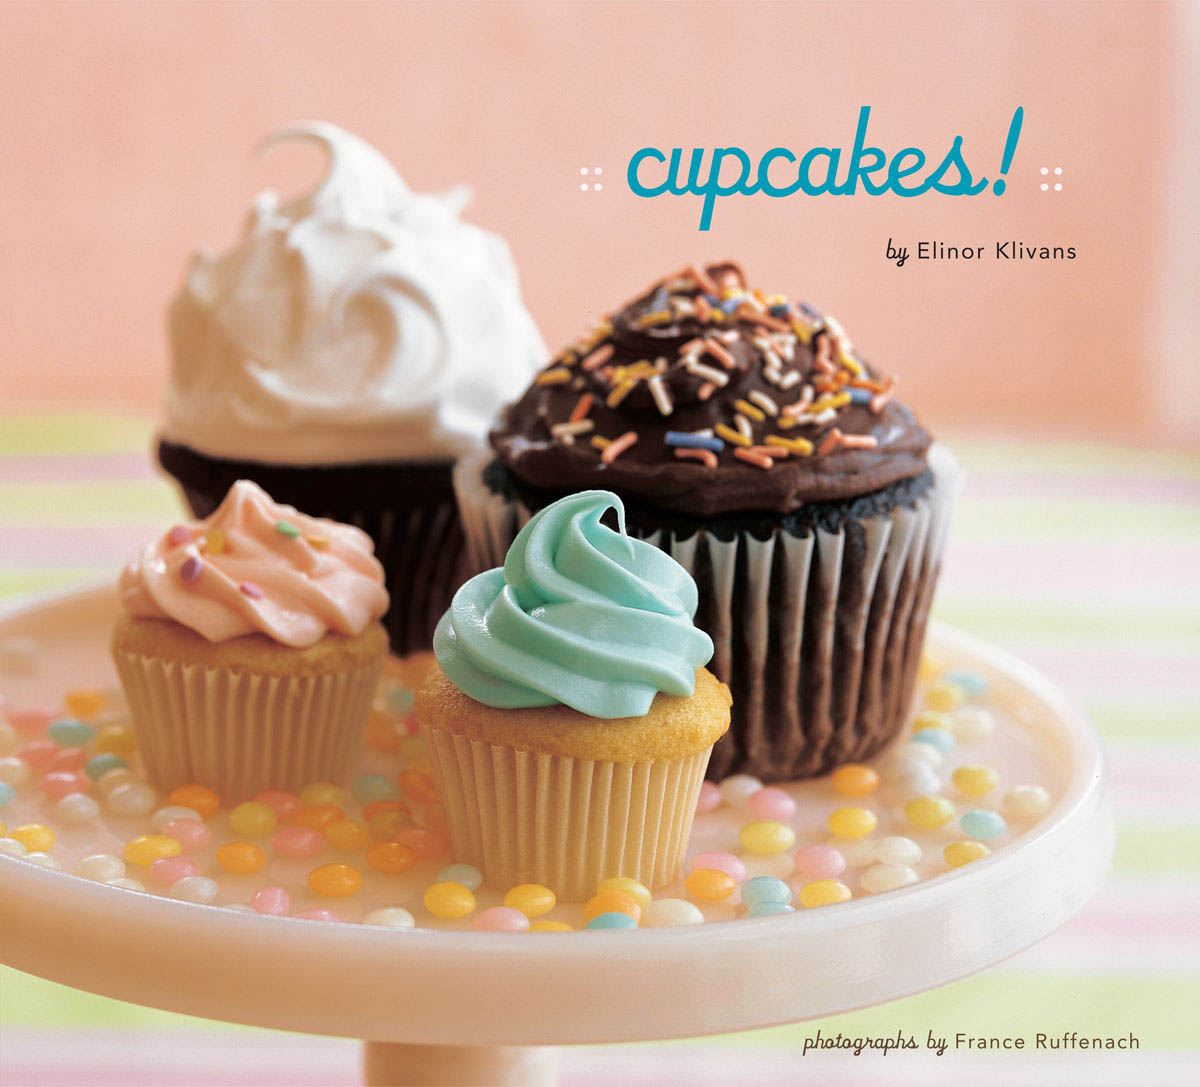 Cupcakes! By: Elinor Klivans; France Ruffenach